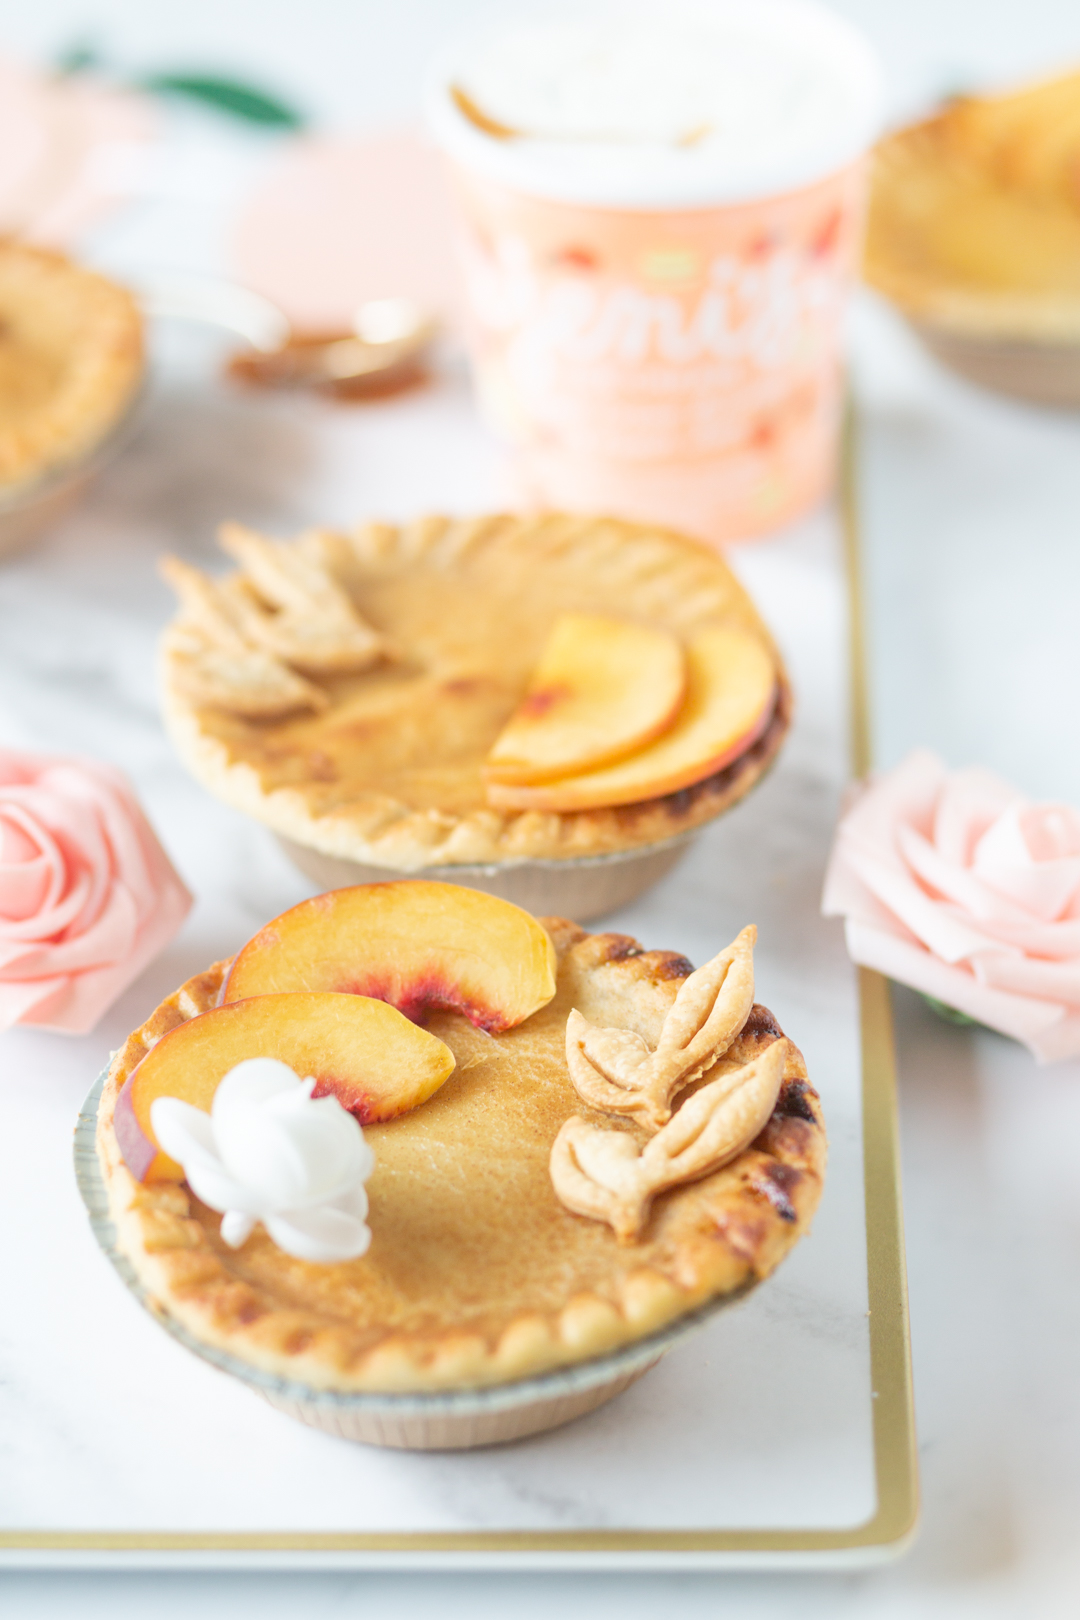 mini peach pie with peach slices, edible flower and pie crust leaves on top.